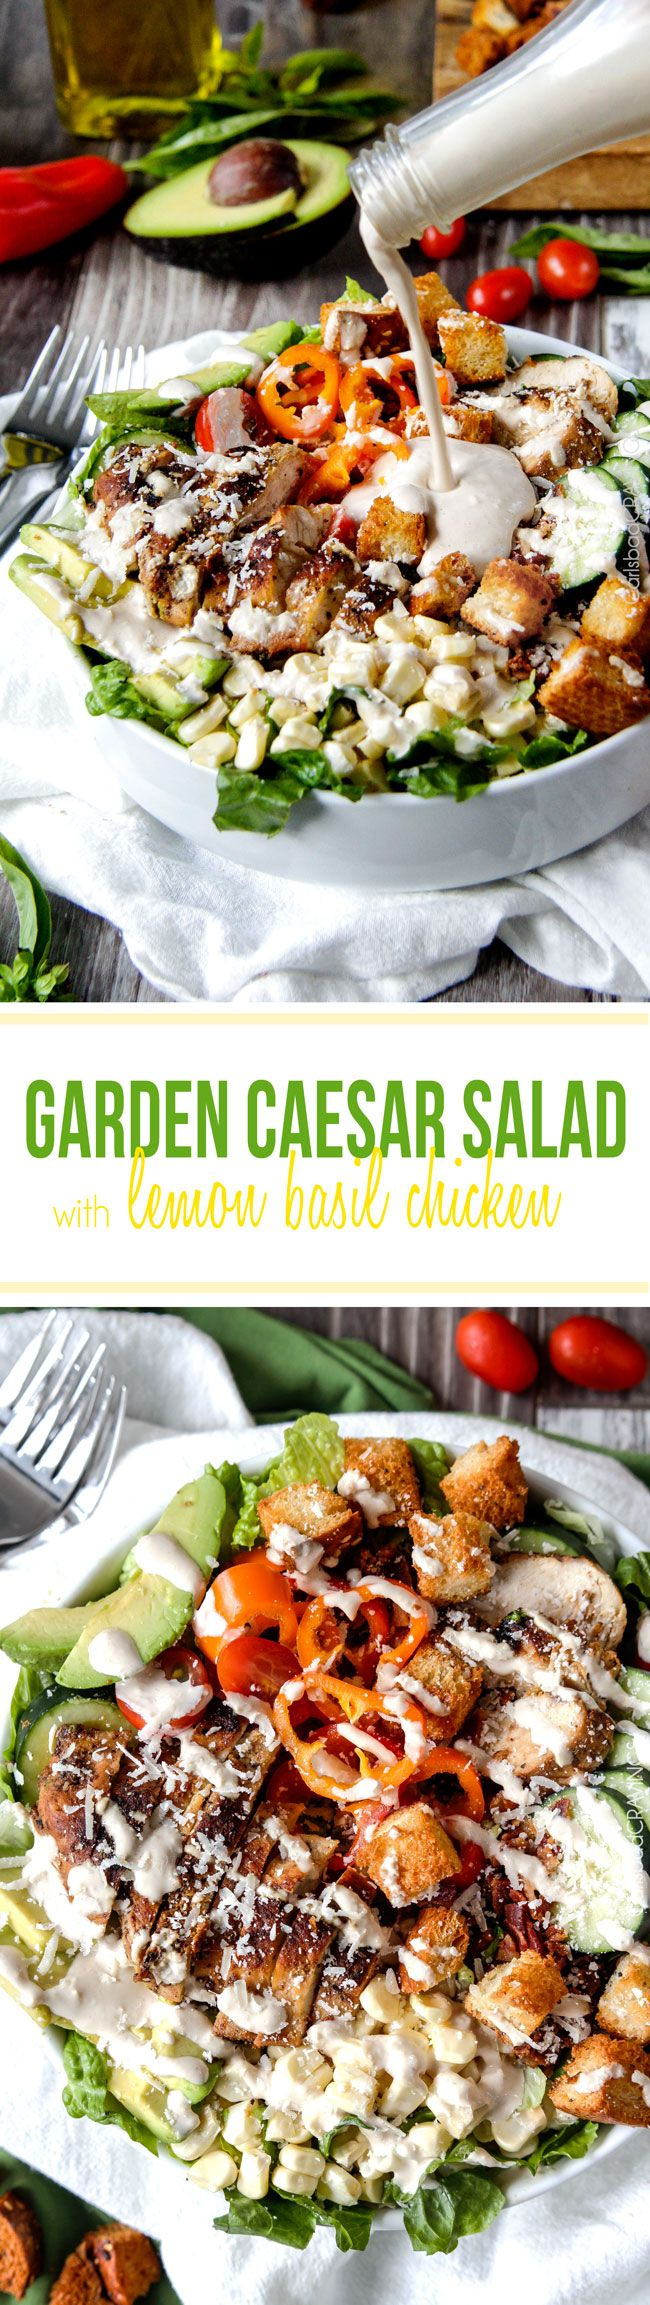 Garden Caesar Salad - Tender Lemon Basil Chicken with crispy bacon, corn, avocados, tomatoes, Parmesan cheese, homemade croutons and more! All bathed in a luscious homemade Caesar dressing. Healthy and amazing!